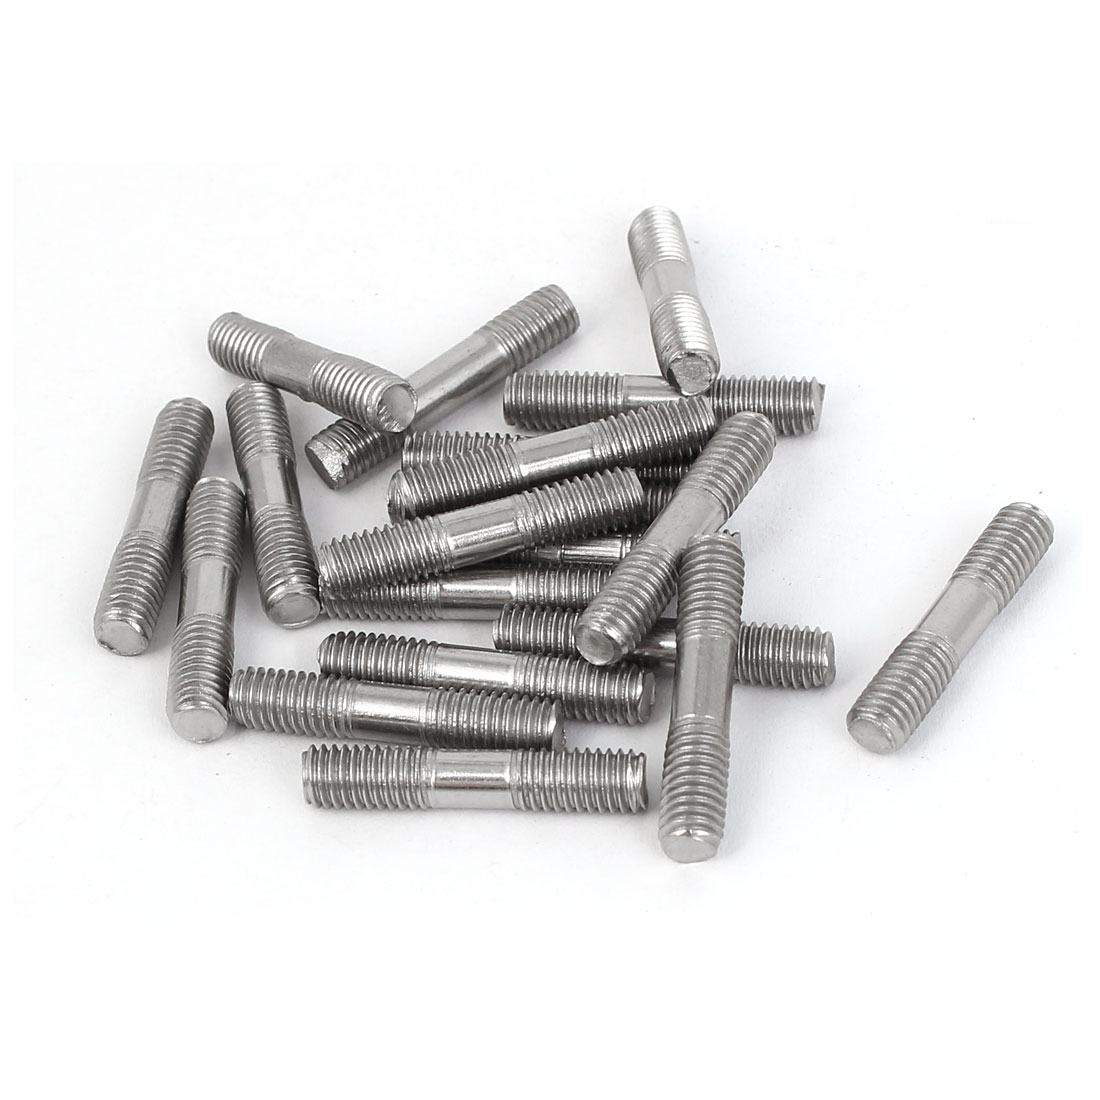 M5x25mm 304 Stainless Steel Double End Thread Tight Adjustable Push Rod Stud 20pcs